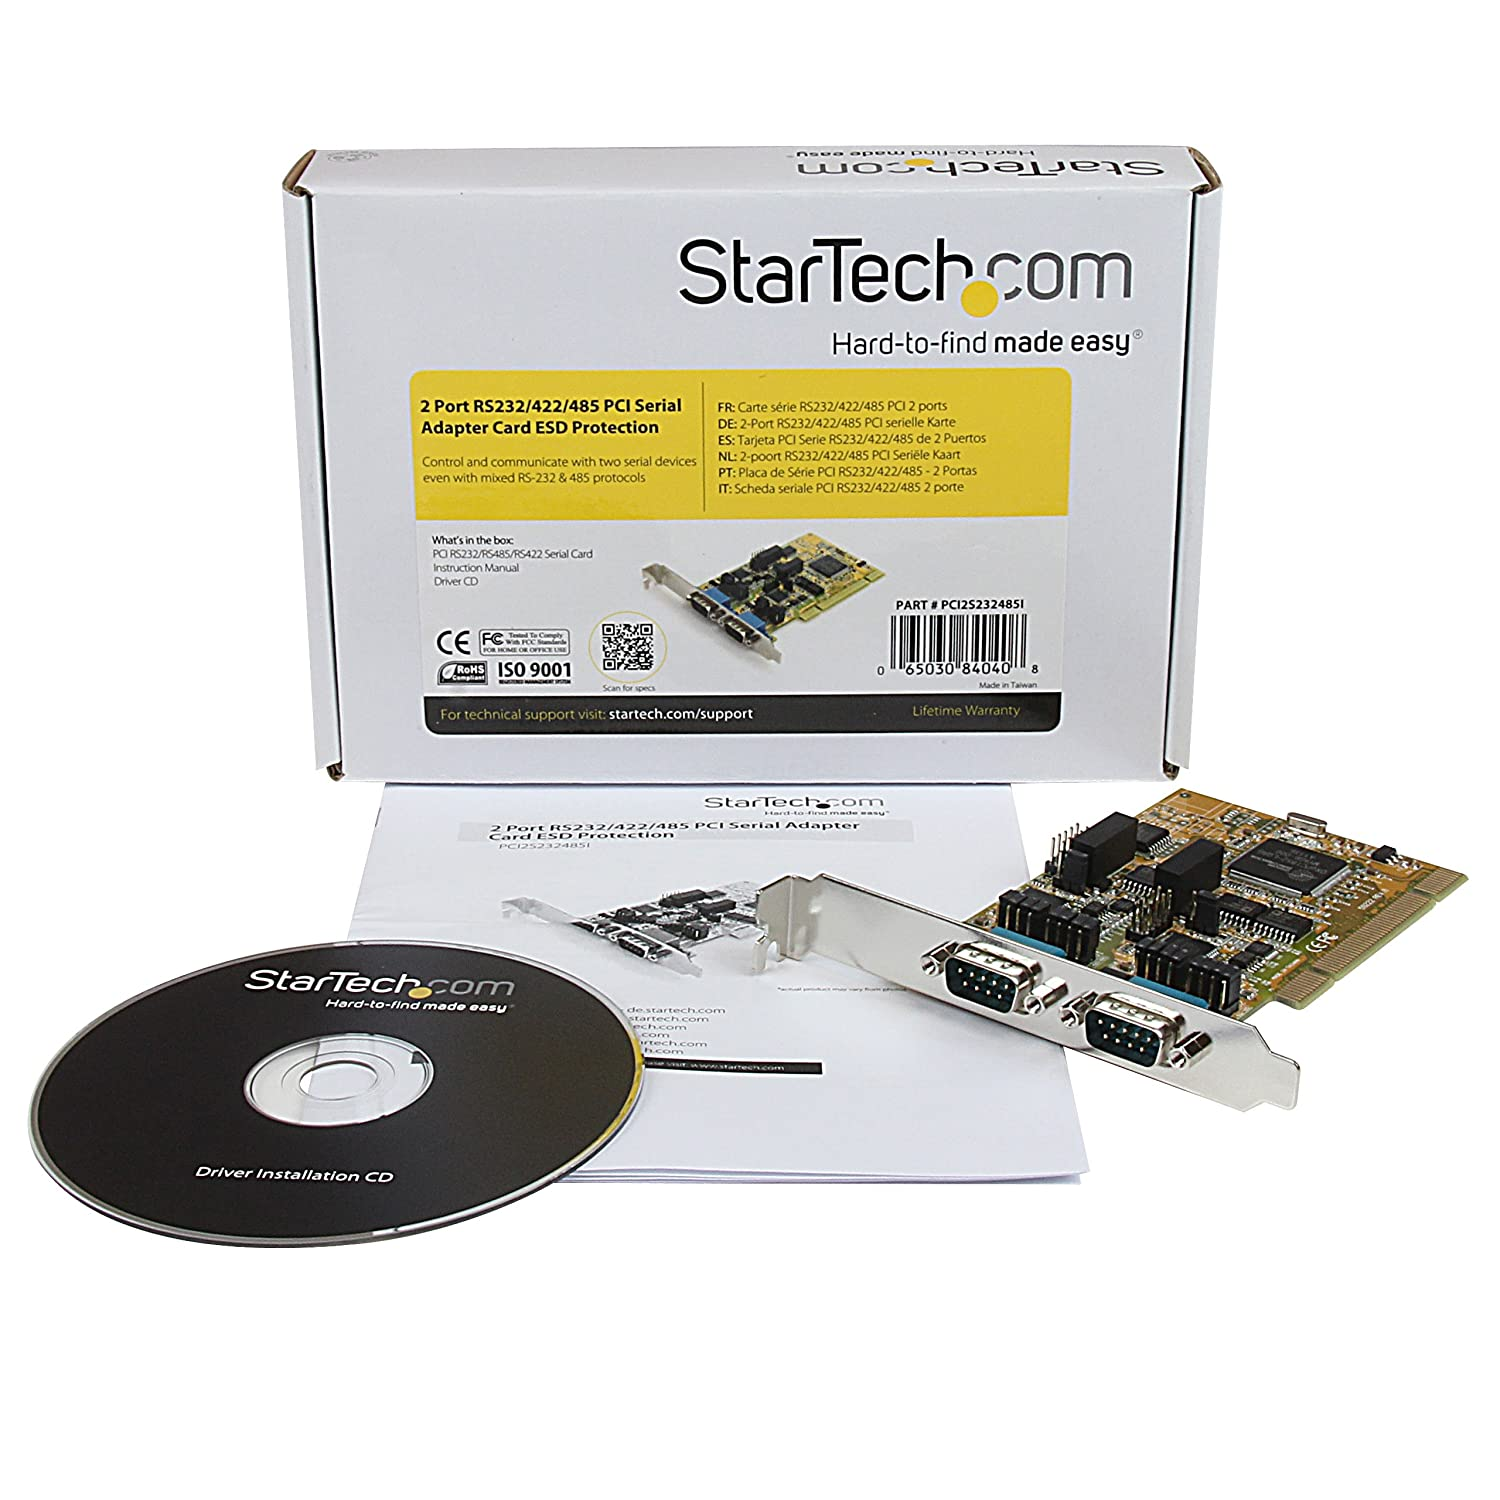 StarTech.com 2 Port RS232/422/485 PCI Serial Adapter Card w/ESD - Serial Adapter - PCI - RS-232 x 2 - Yellow - PCI2S232485I